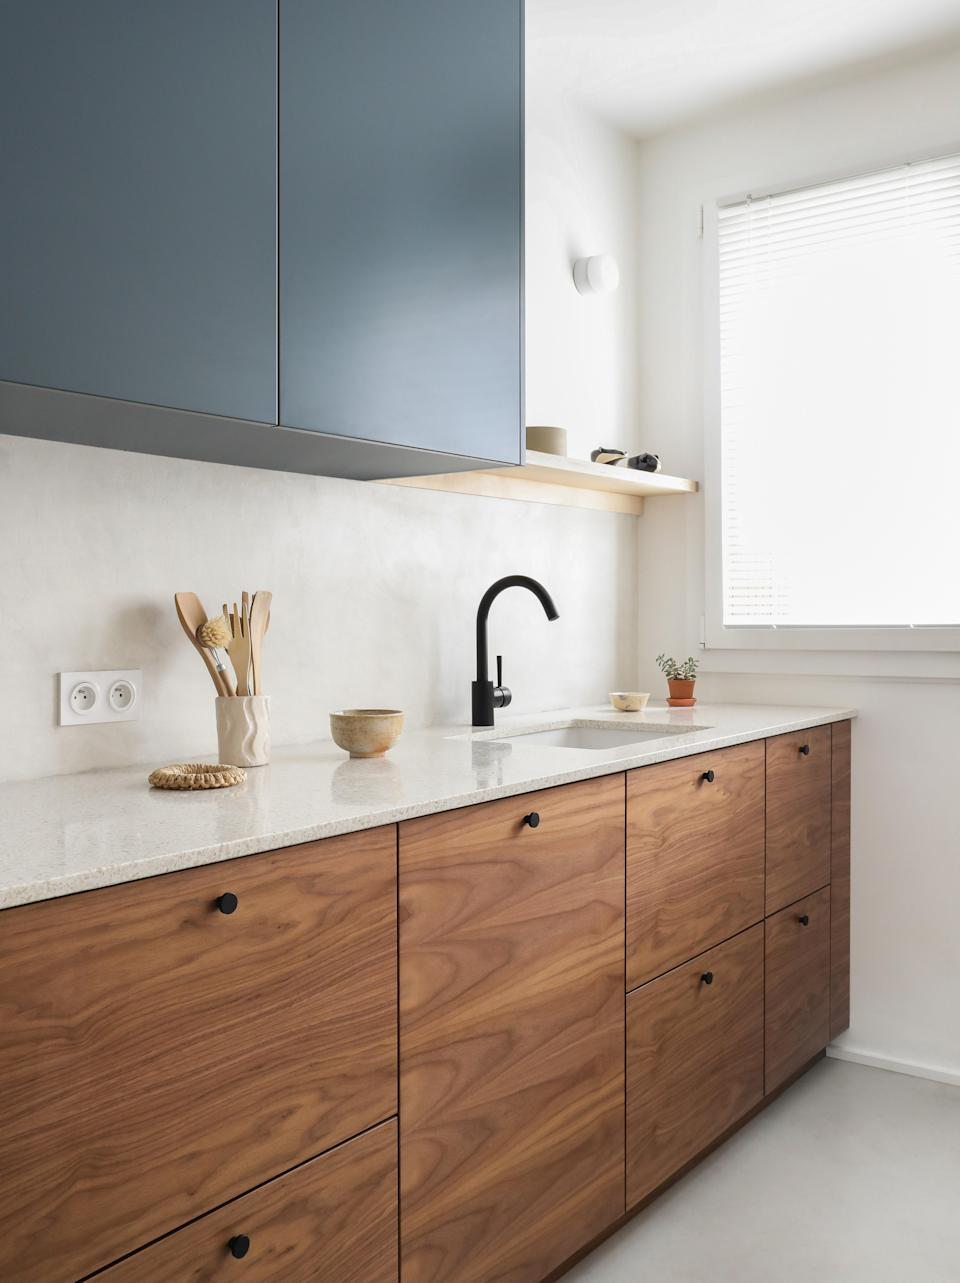 """<div class=""""caption""""><strong>AFTER:</strong> In the peacock blue and walnut kitchen, some pieces are by IKEA, and the cabinet doors are by <a href=""""https://www.helsingo.com/en/"""" rel=""""nofollow noopener"""" target=""""_blank"""" data-ylk=""""slk:Helsingö."""" class=""""link rapid-noclick-resp"""">Helsingö.</a></div>"""